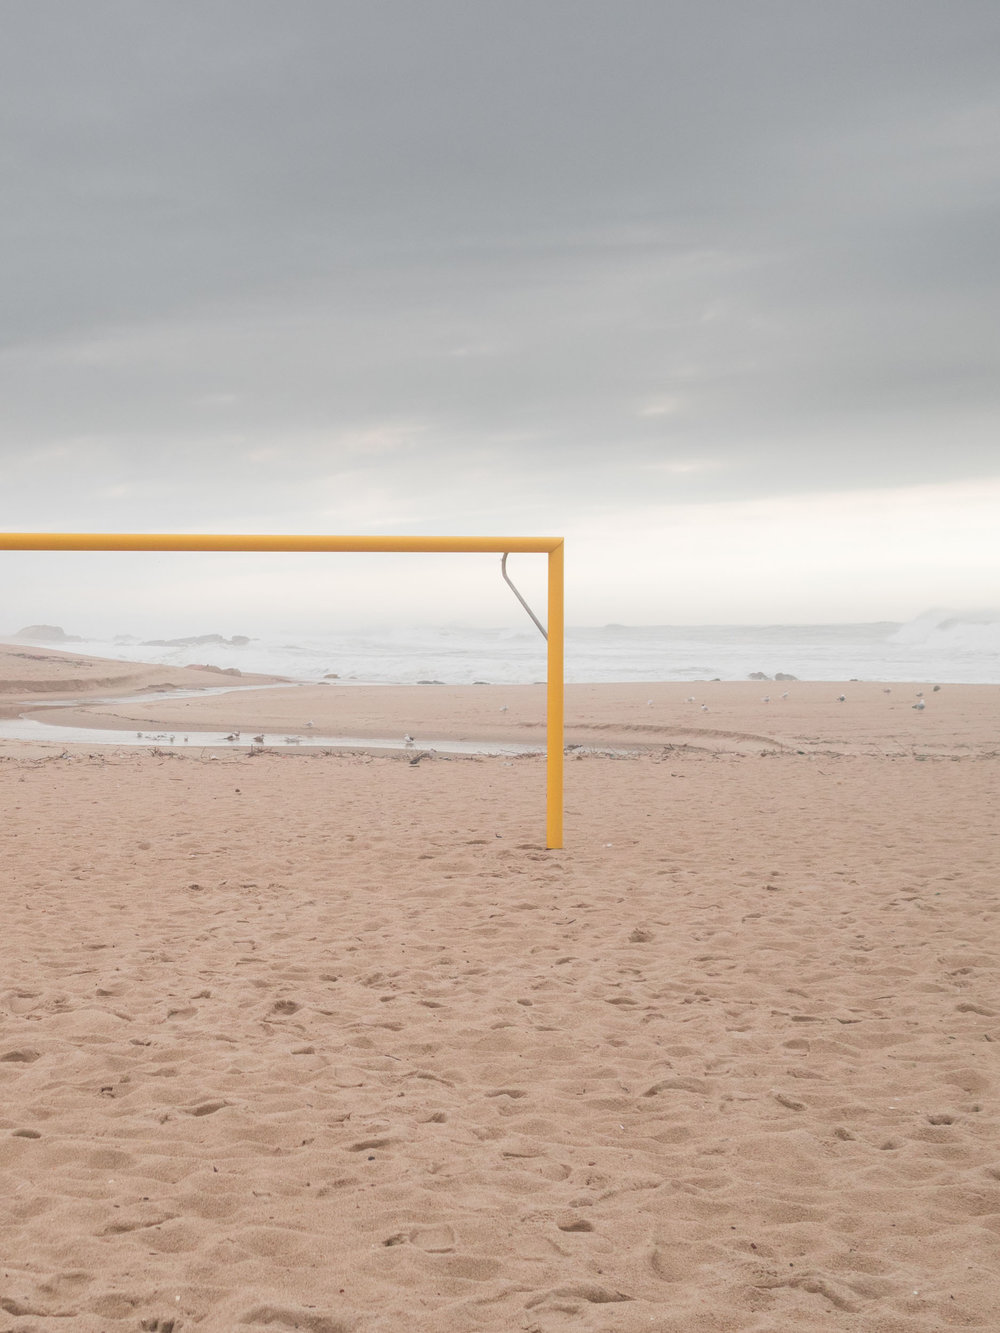 Empty football goal on a beach in Portugal.